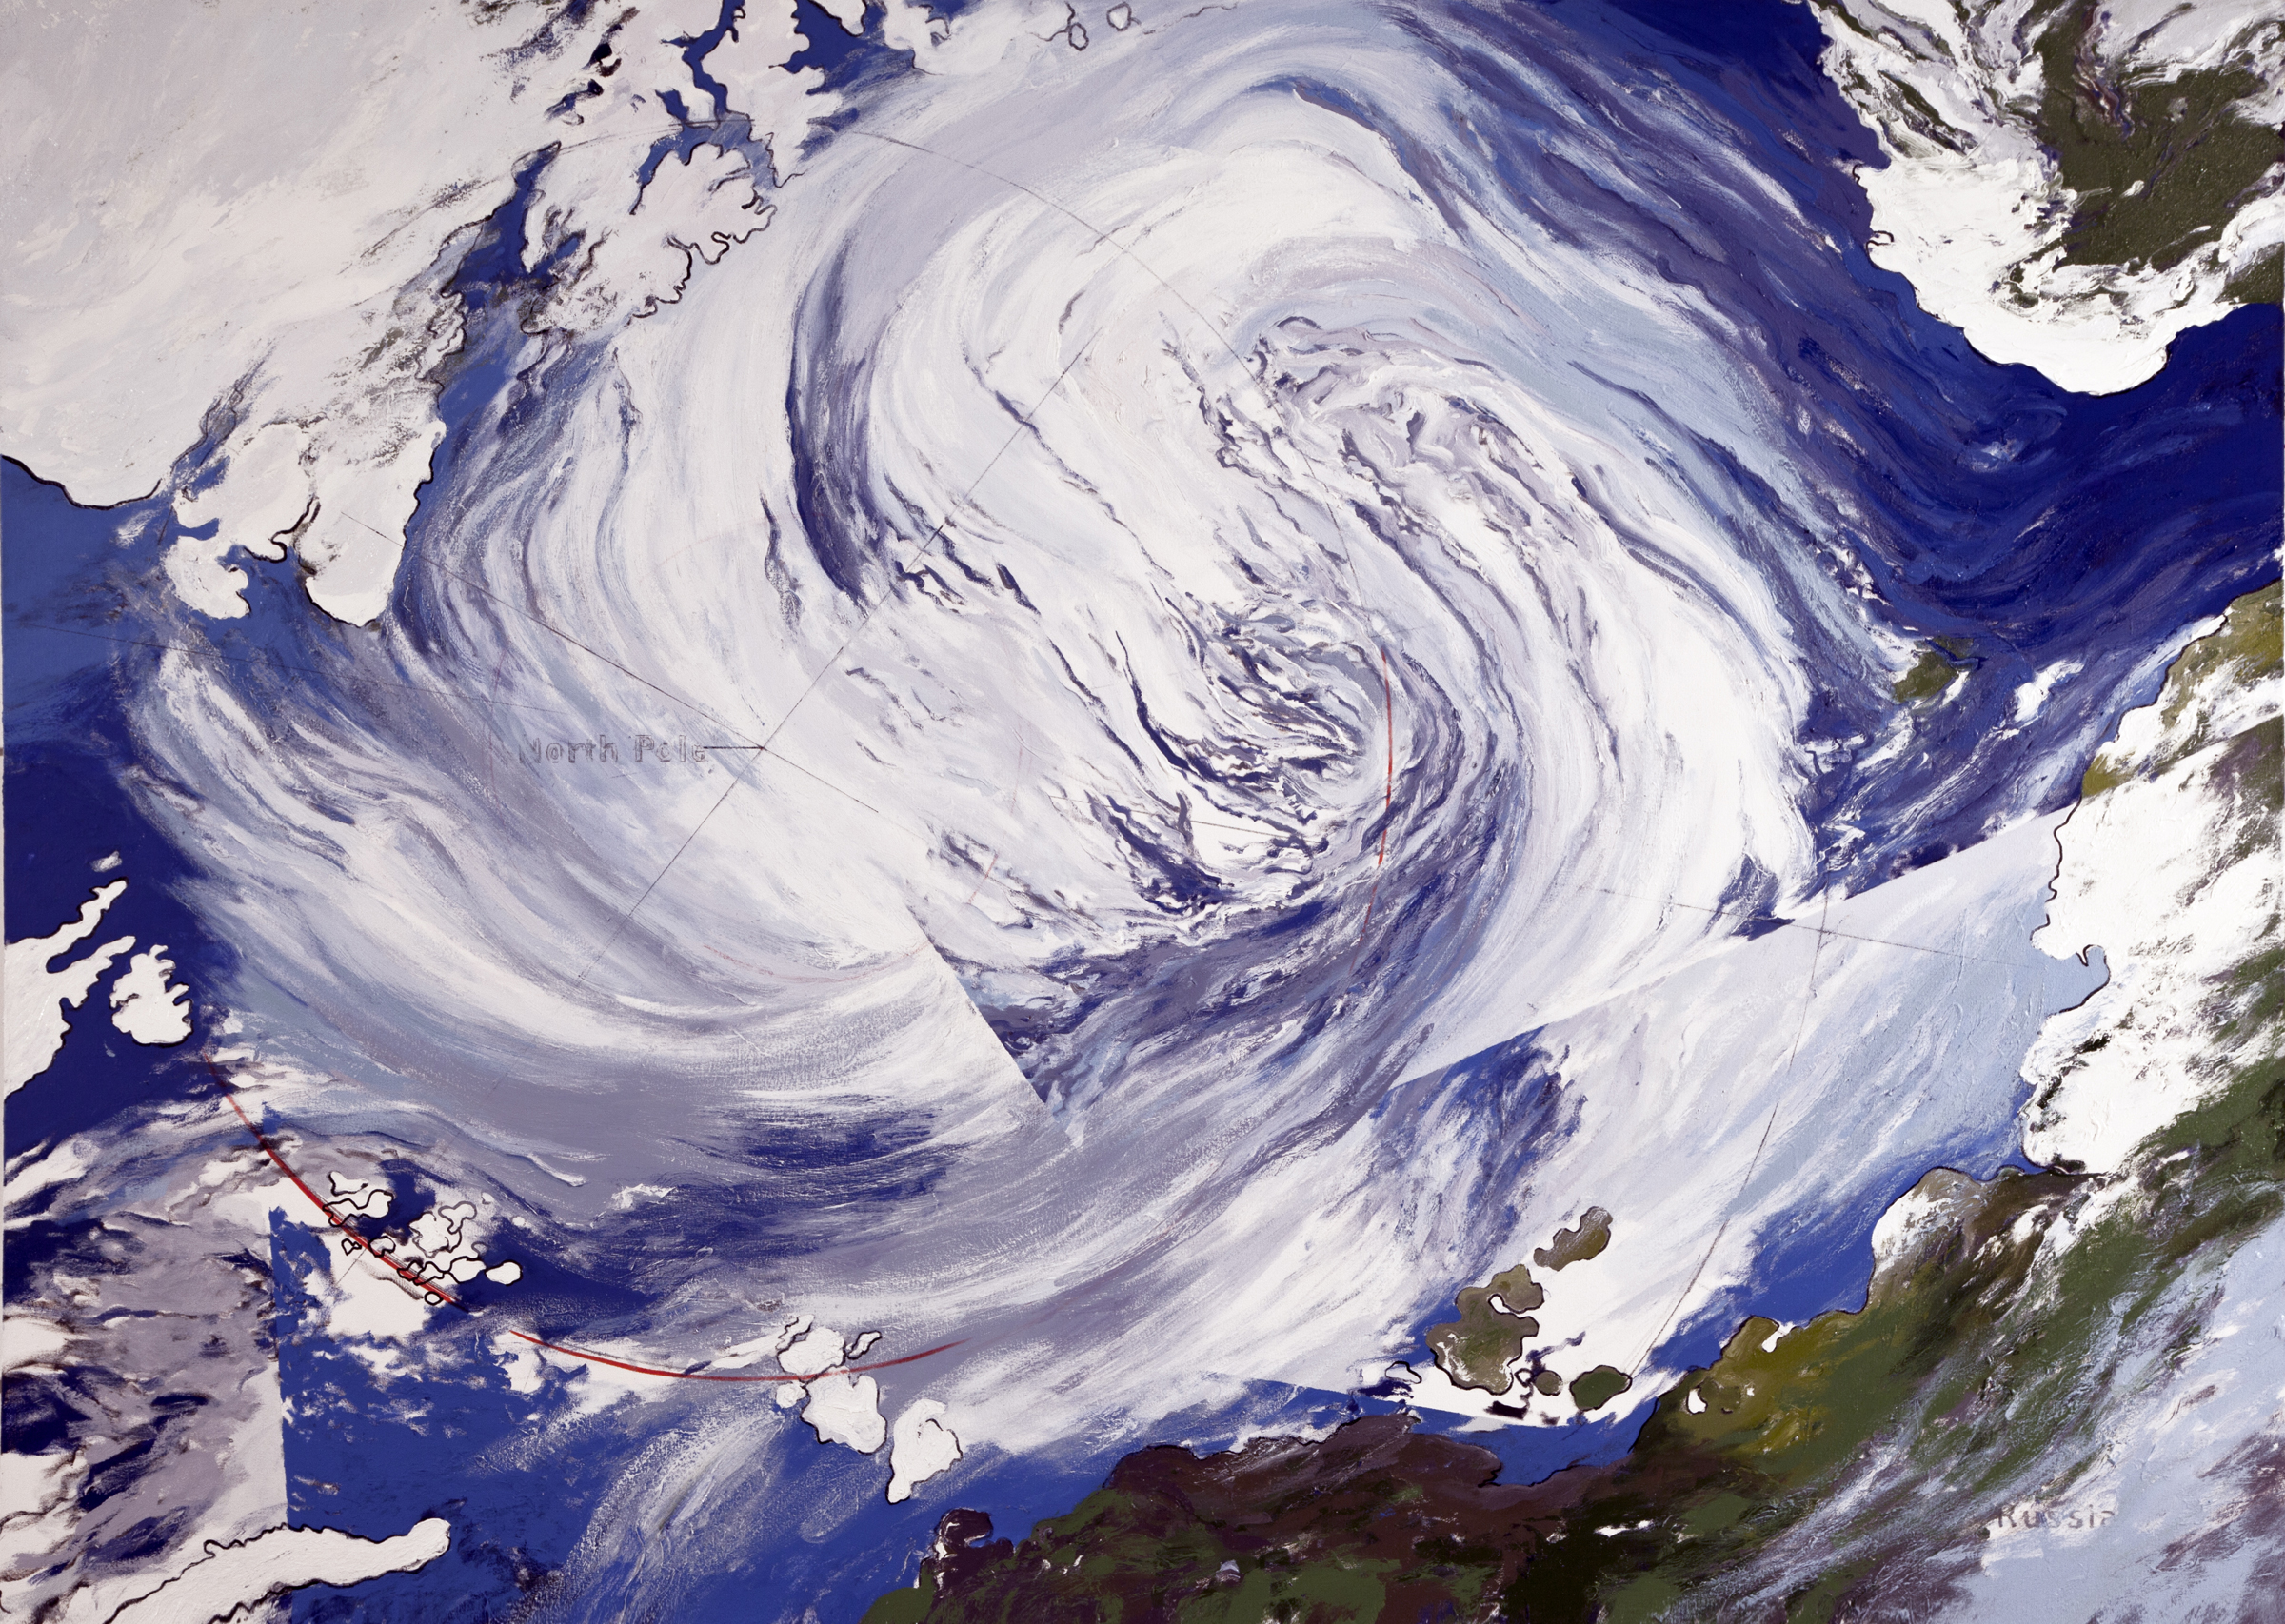 Arctic Cyclone, August 2012 (after NASA)